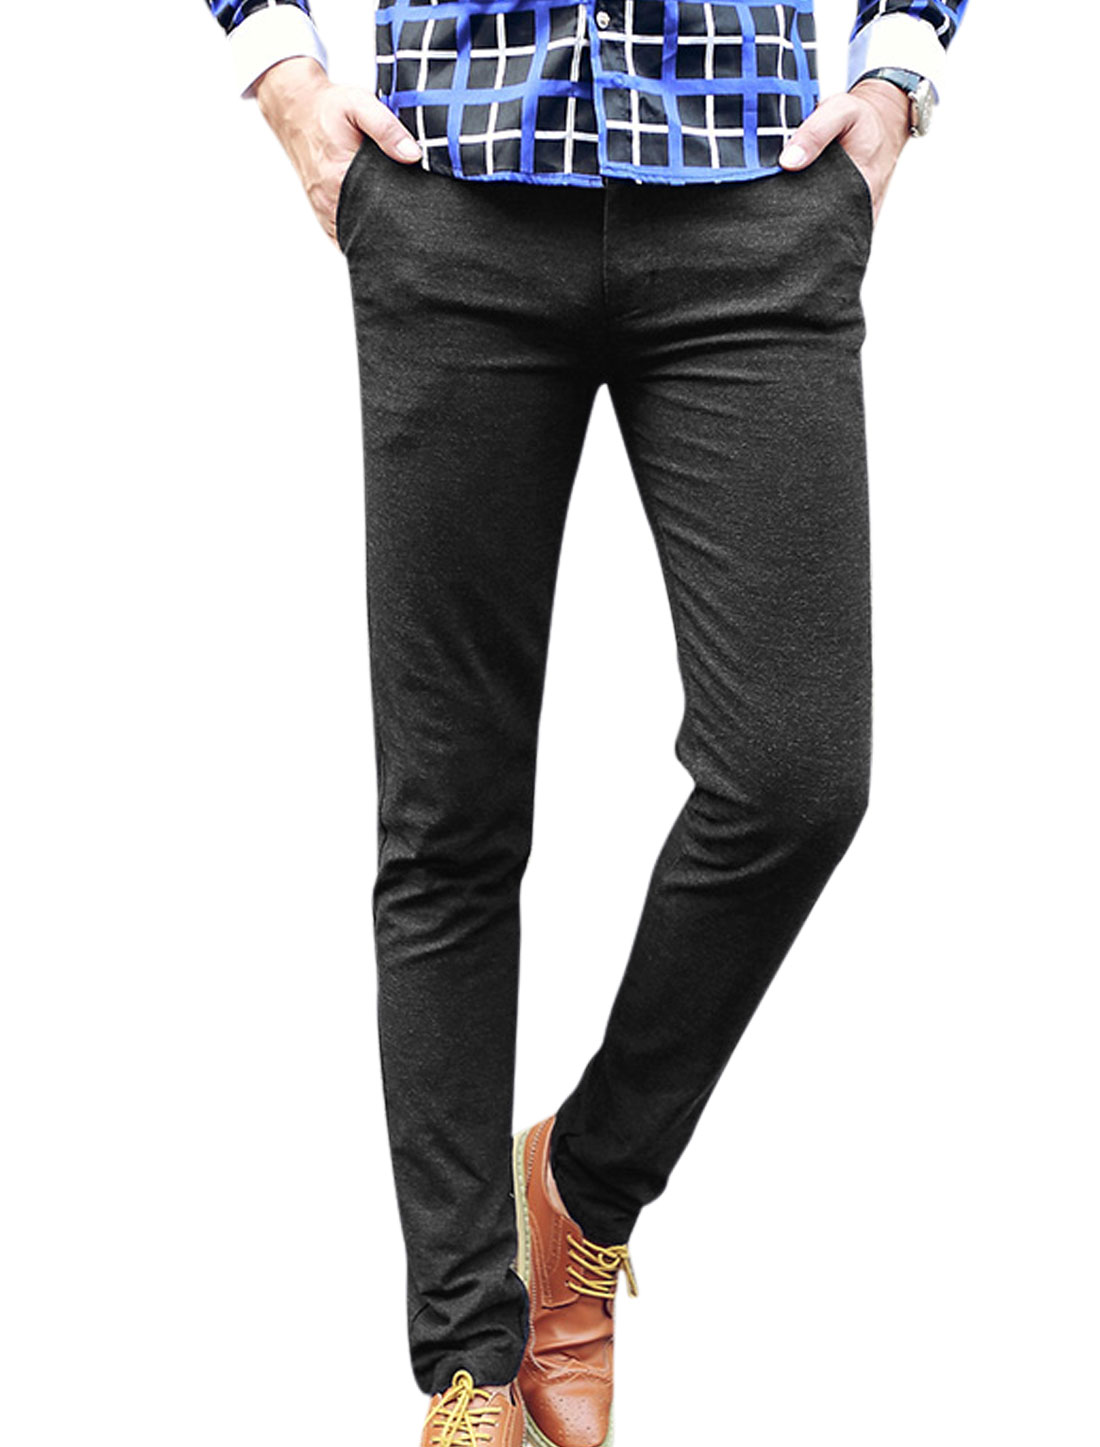 Men Double Pockets Back Zip Fly Button Closure Casual Pants Black W30